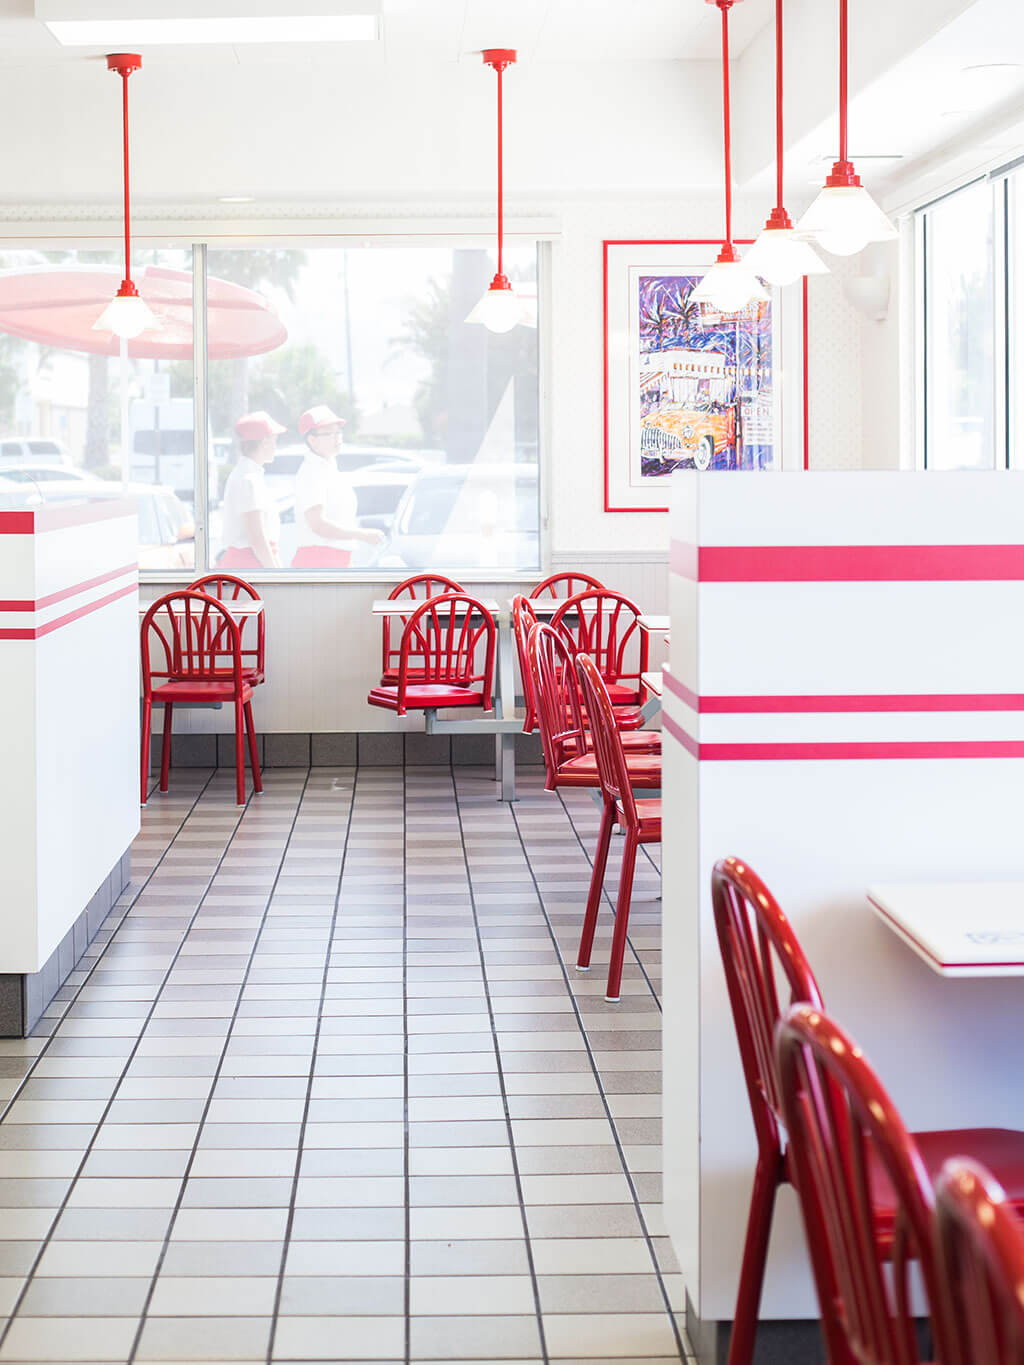 drive-swim-fly-in-n-out-burger-gilroy-california-cheeseburgers-fast-food-west-coast-original-dining-room